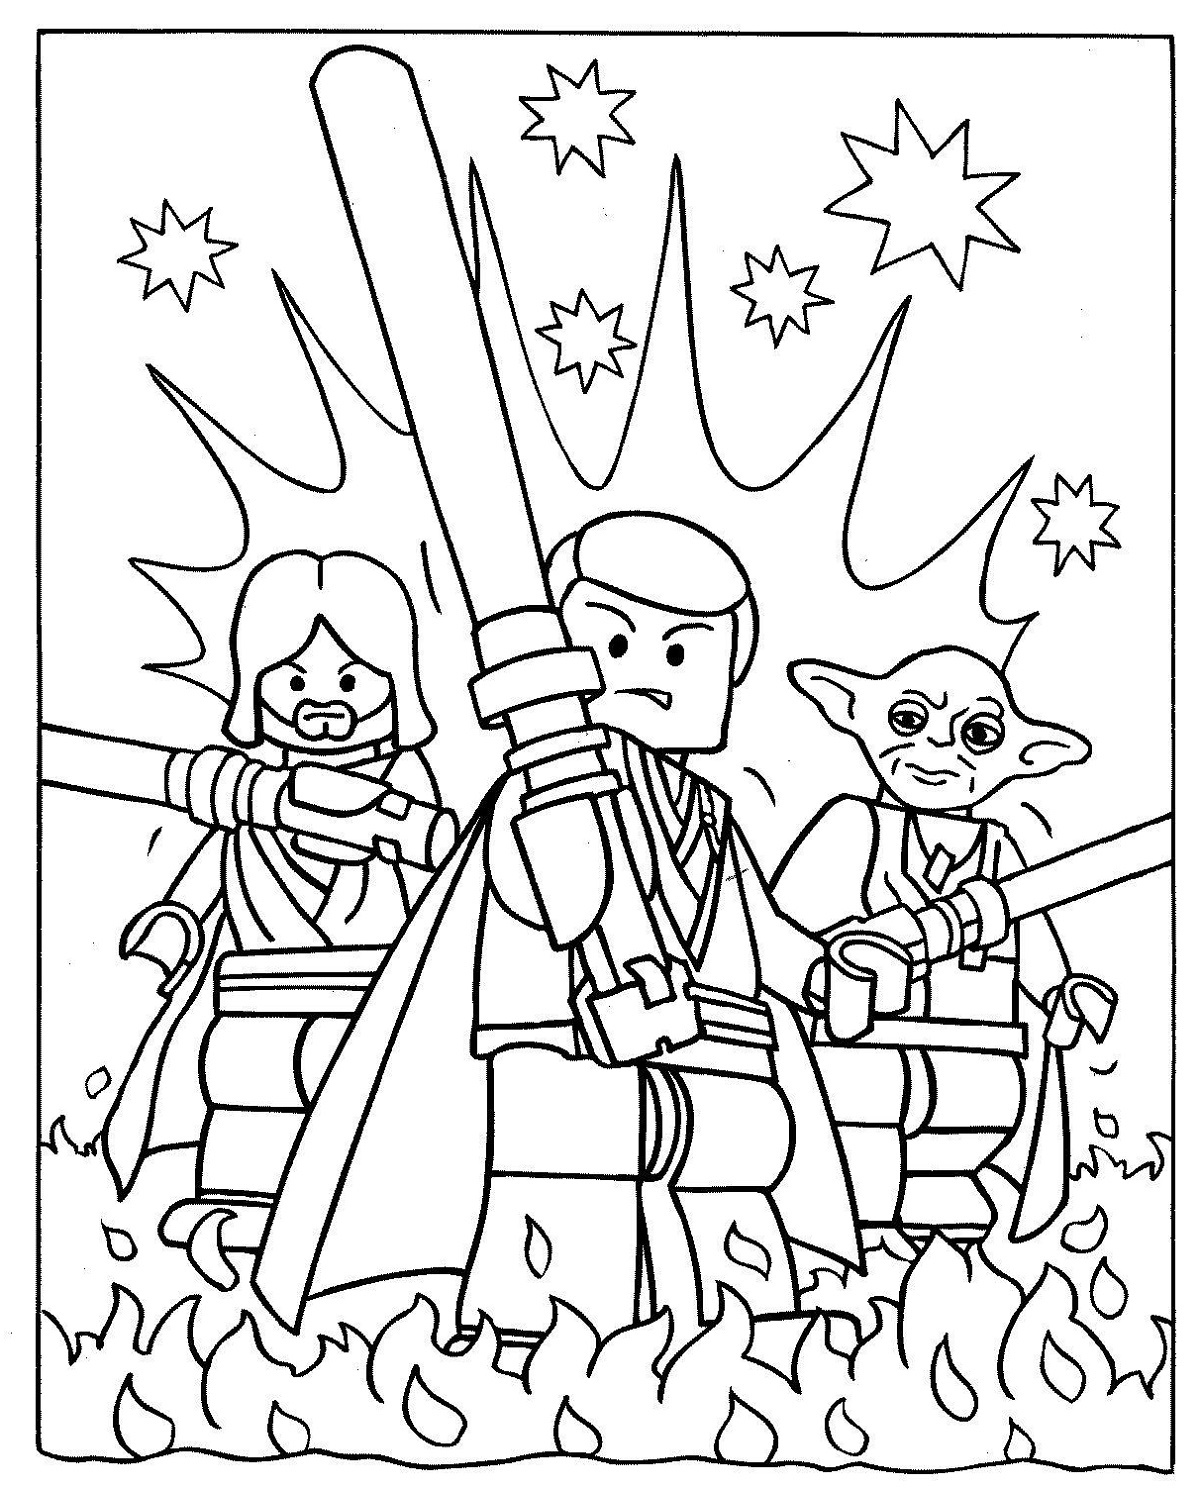 printable lego star wars coloring pages lego star wars coloring pages k5 worksheets lego pages printable coloring star wars